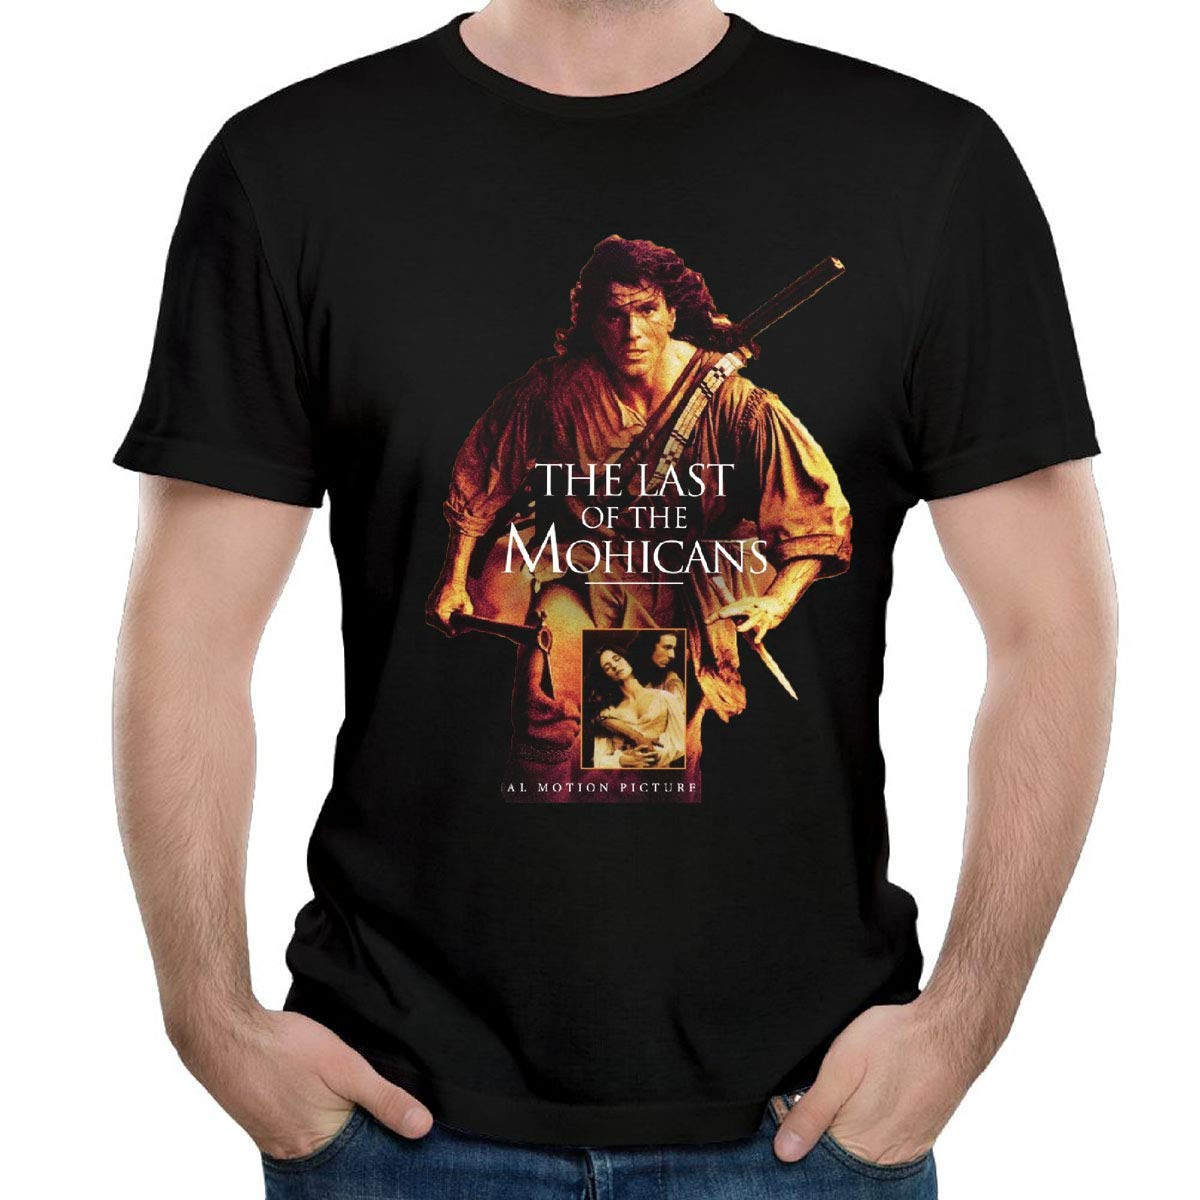 Prp966 The Last Of The Mohiicans Movies For Mens Contton Black Shirts